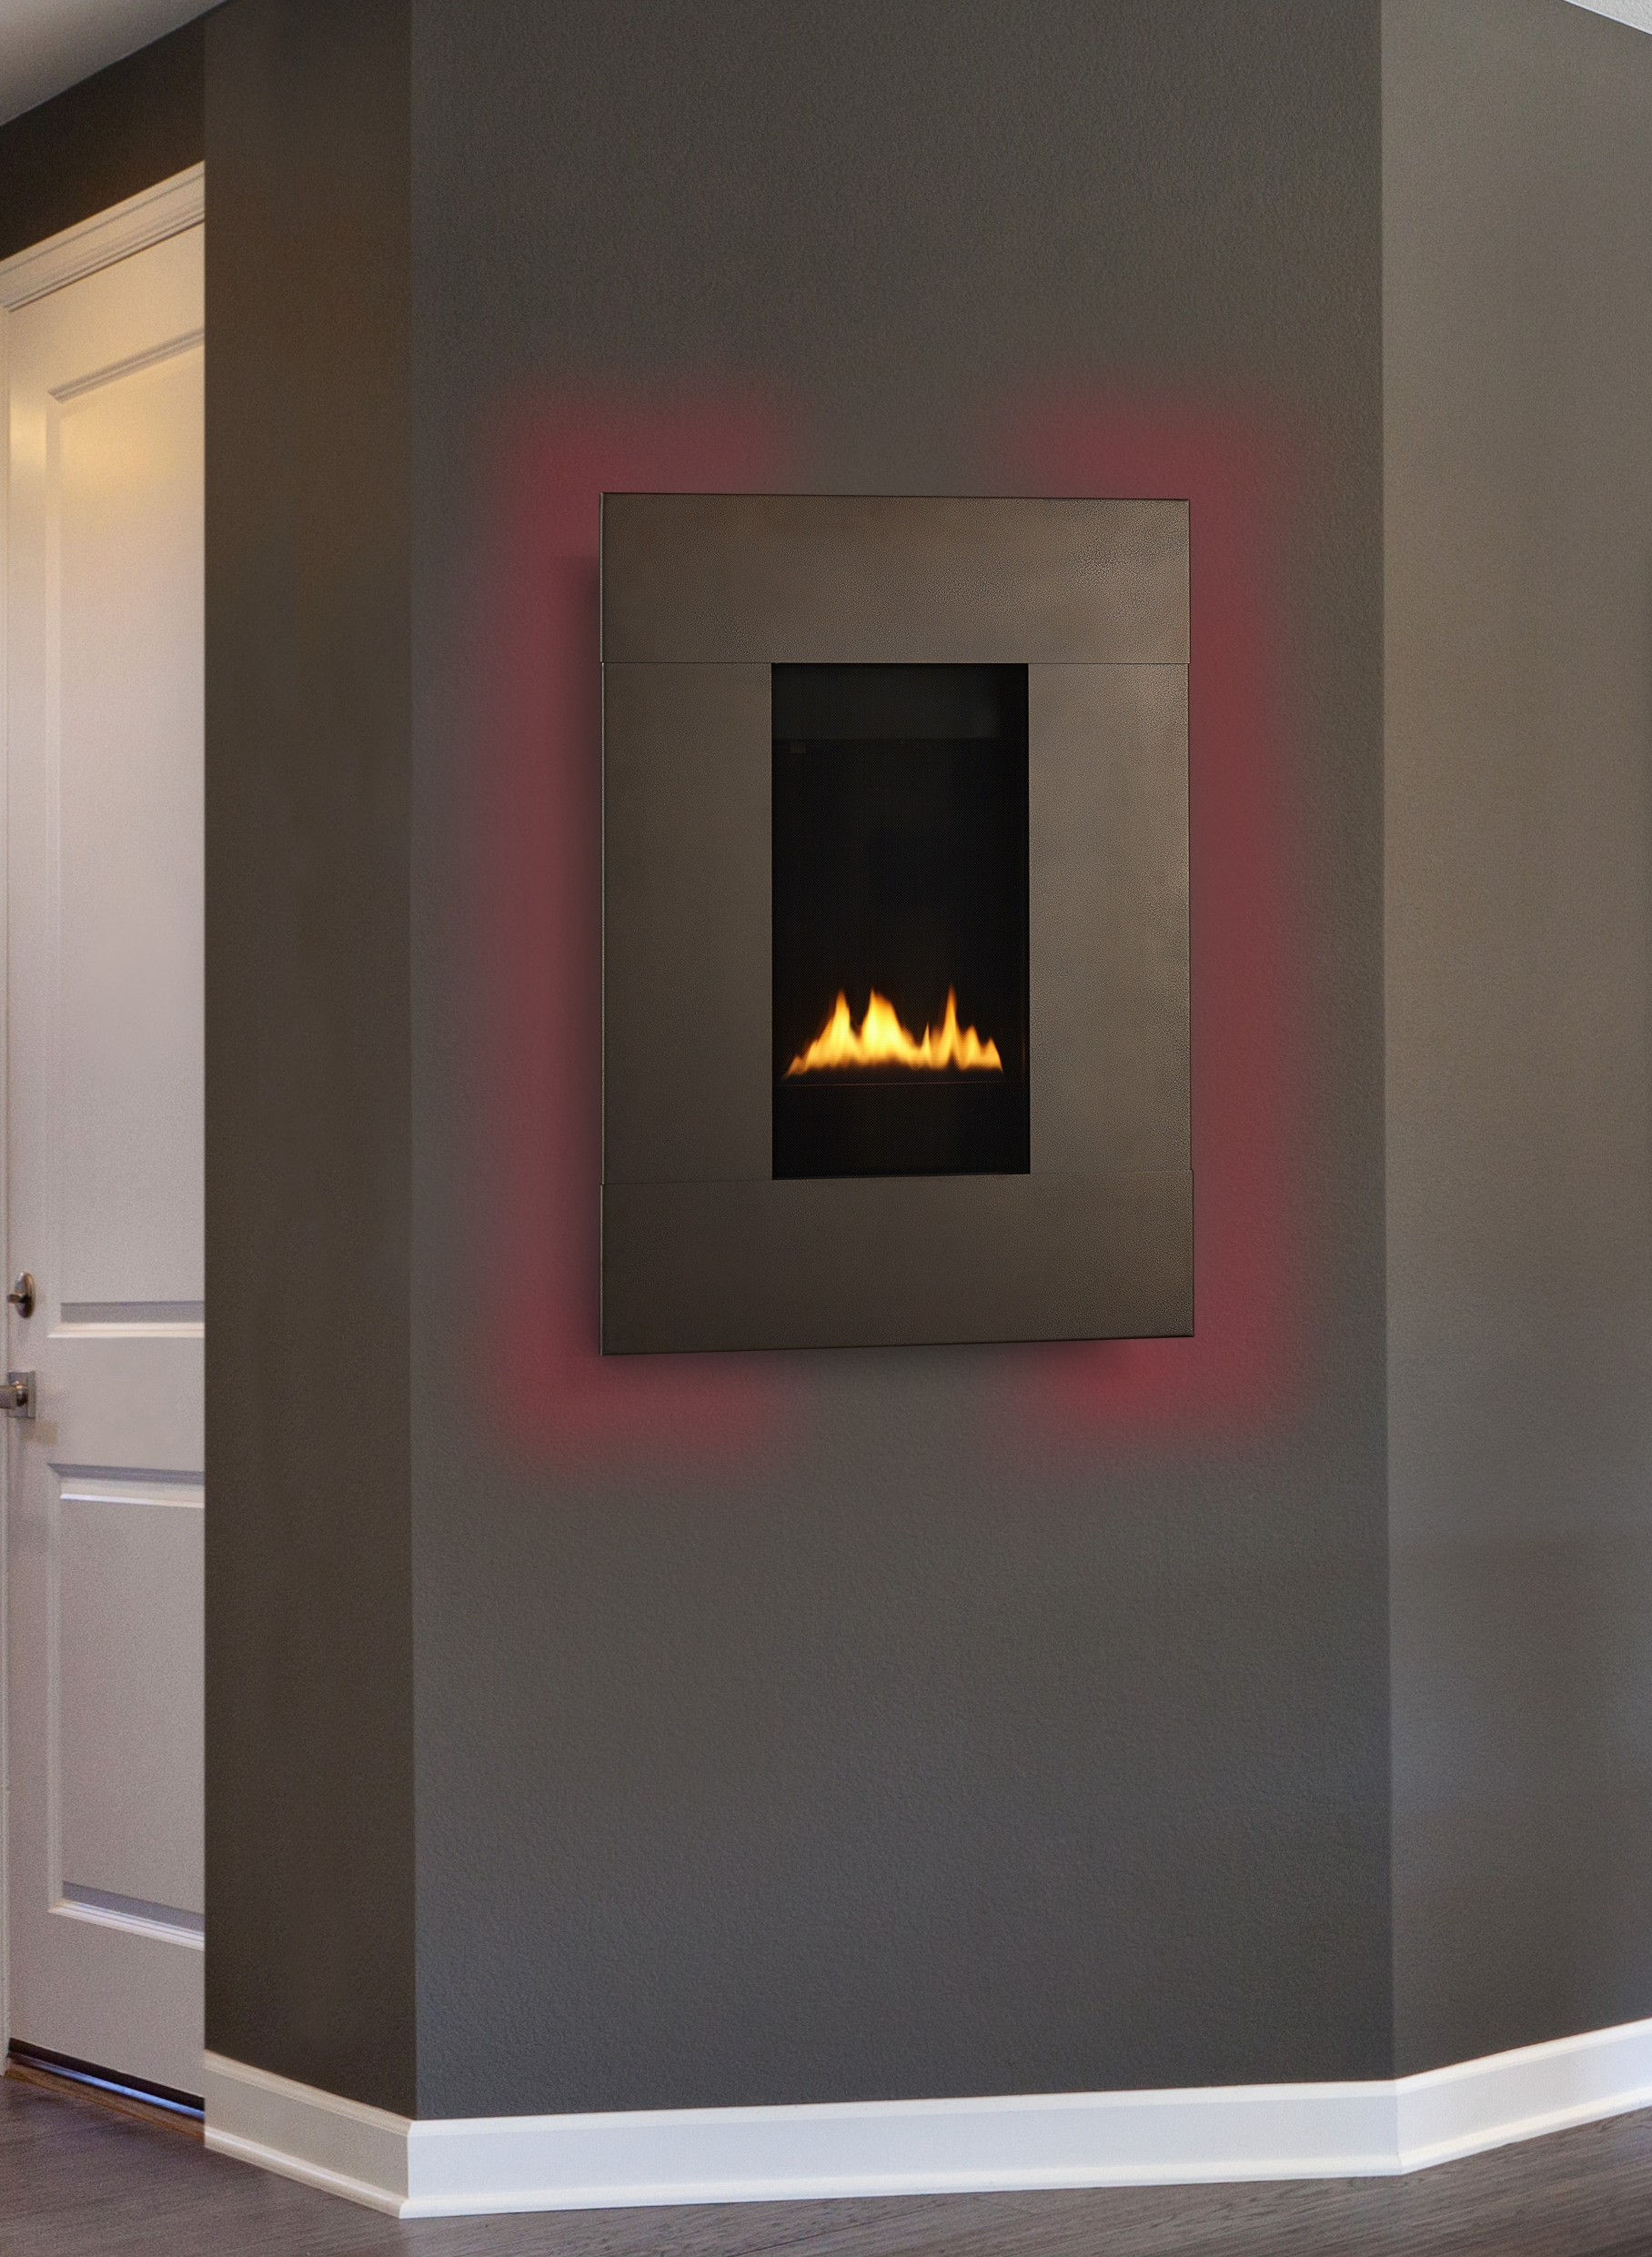 vent caliber kastle heatilator front and inch with media fireplaces gas amber fireplace direct simon modern glass